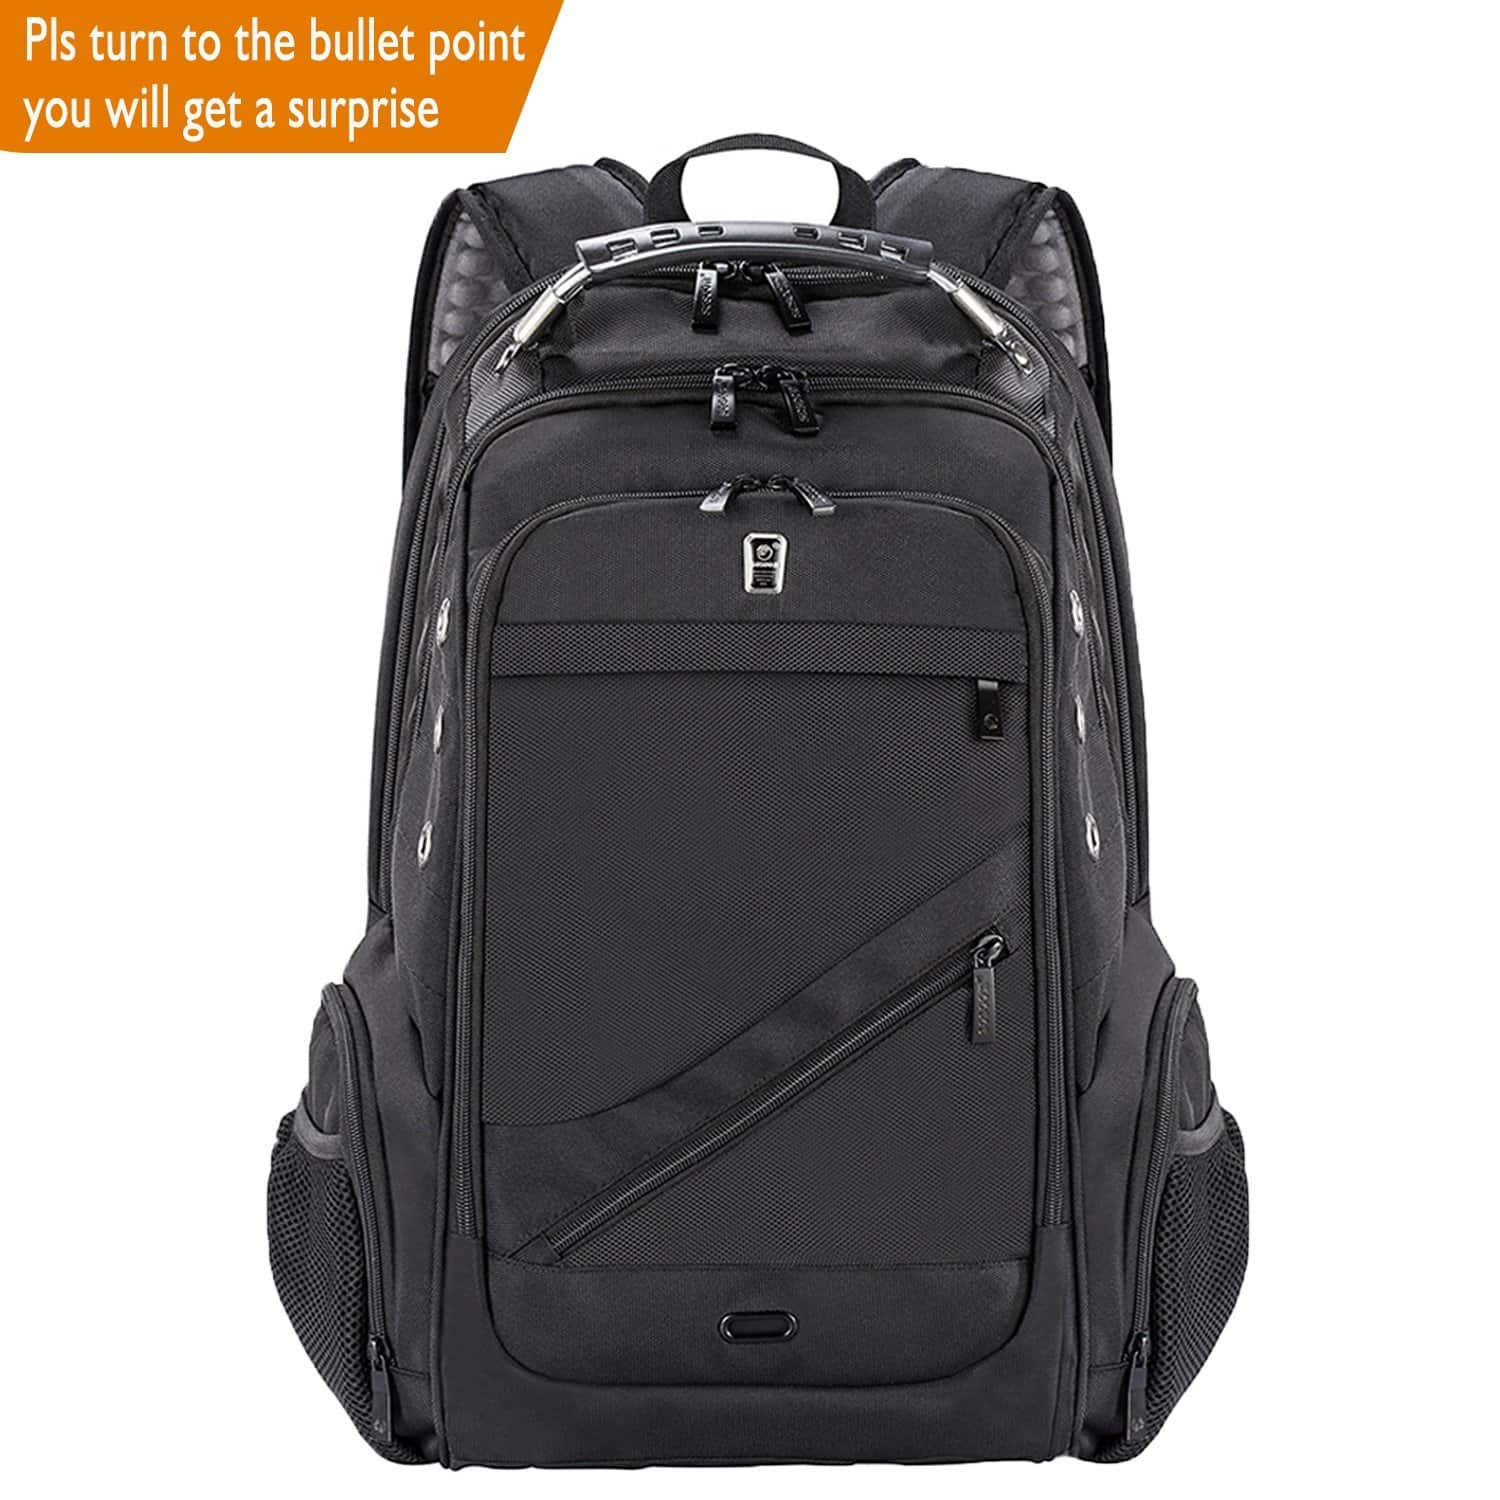 Anti-Theft Laptop Backpack with USB Charging Port $19.79 @ Amazon